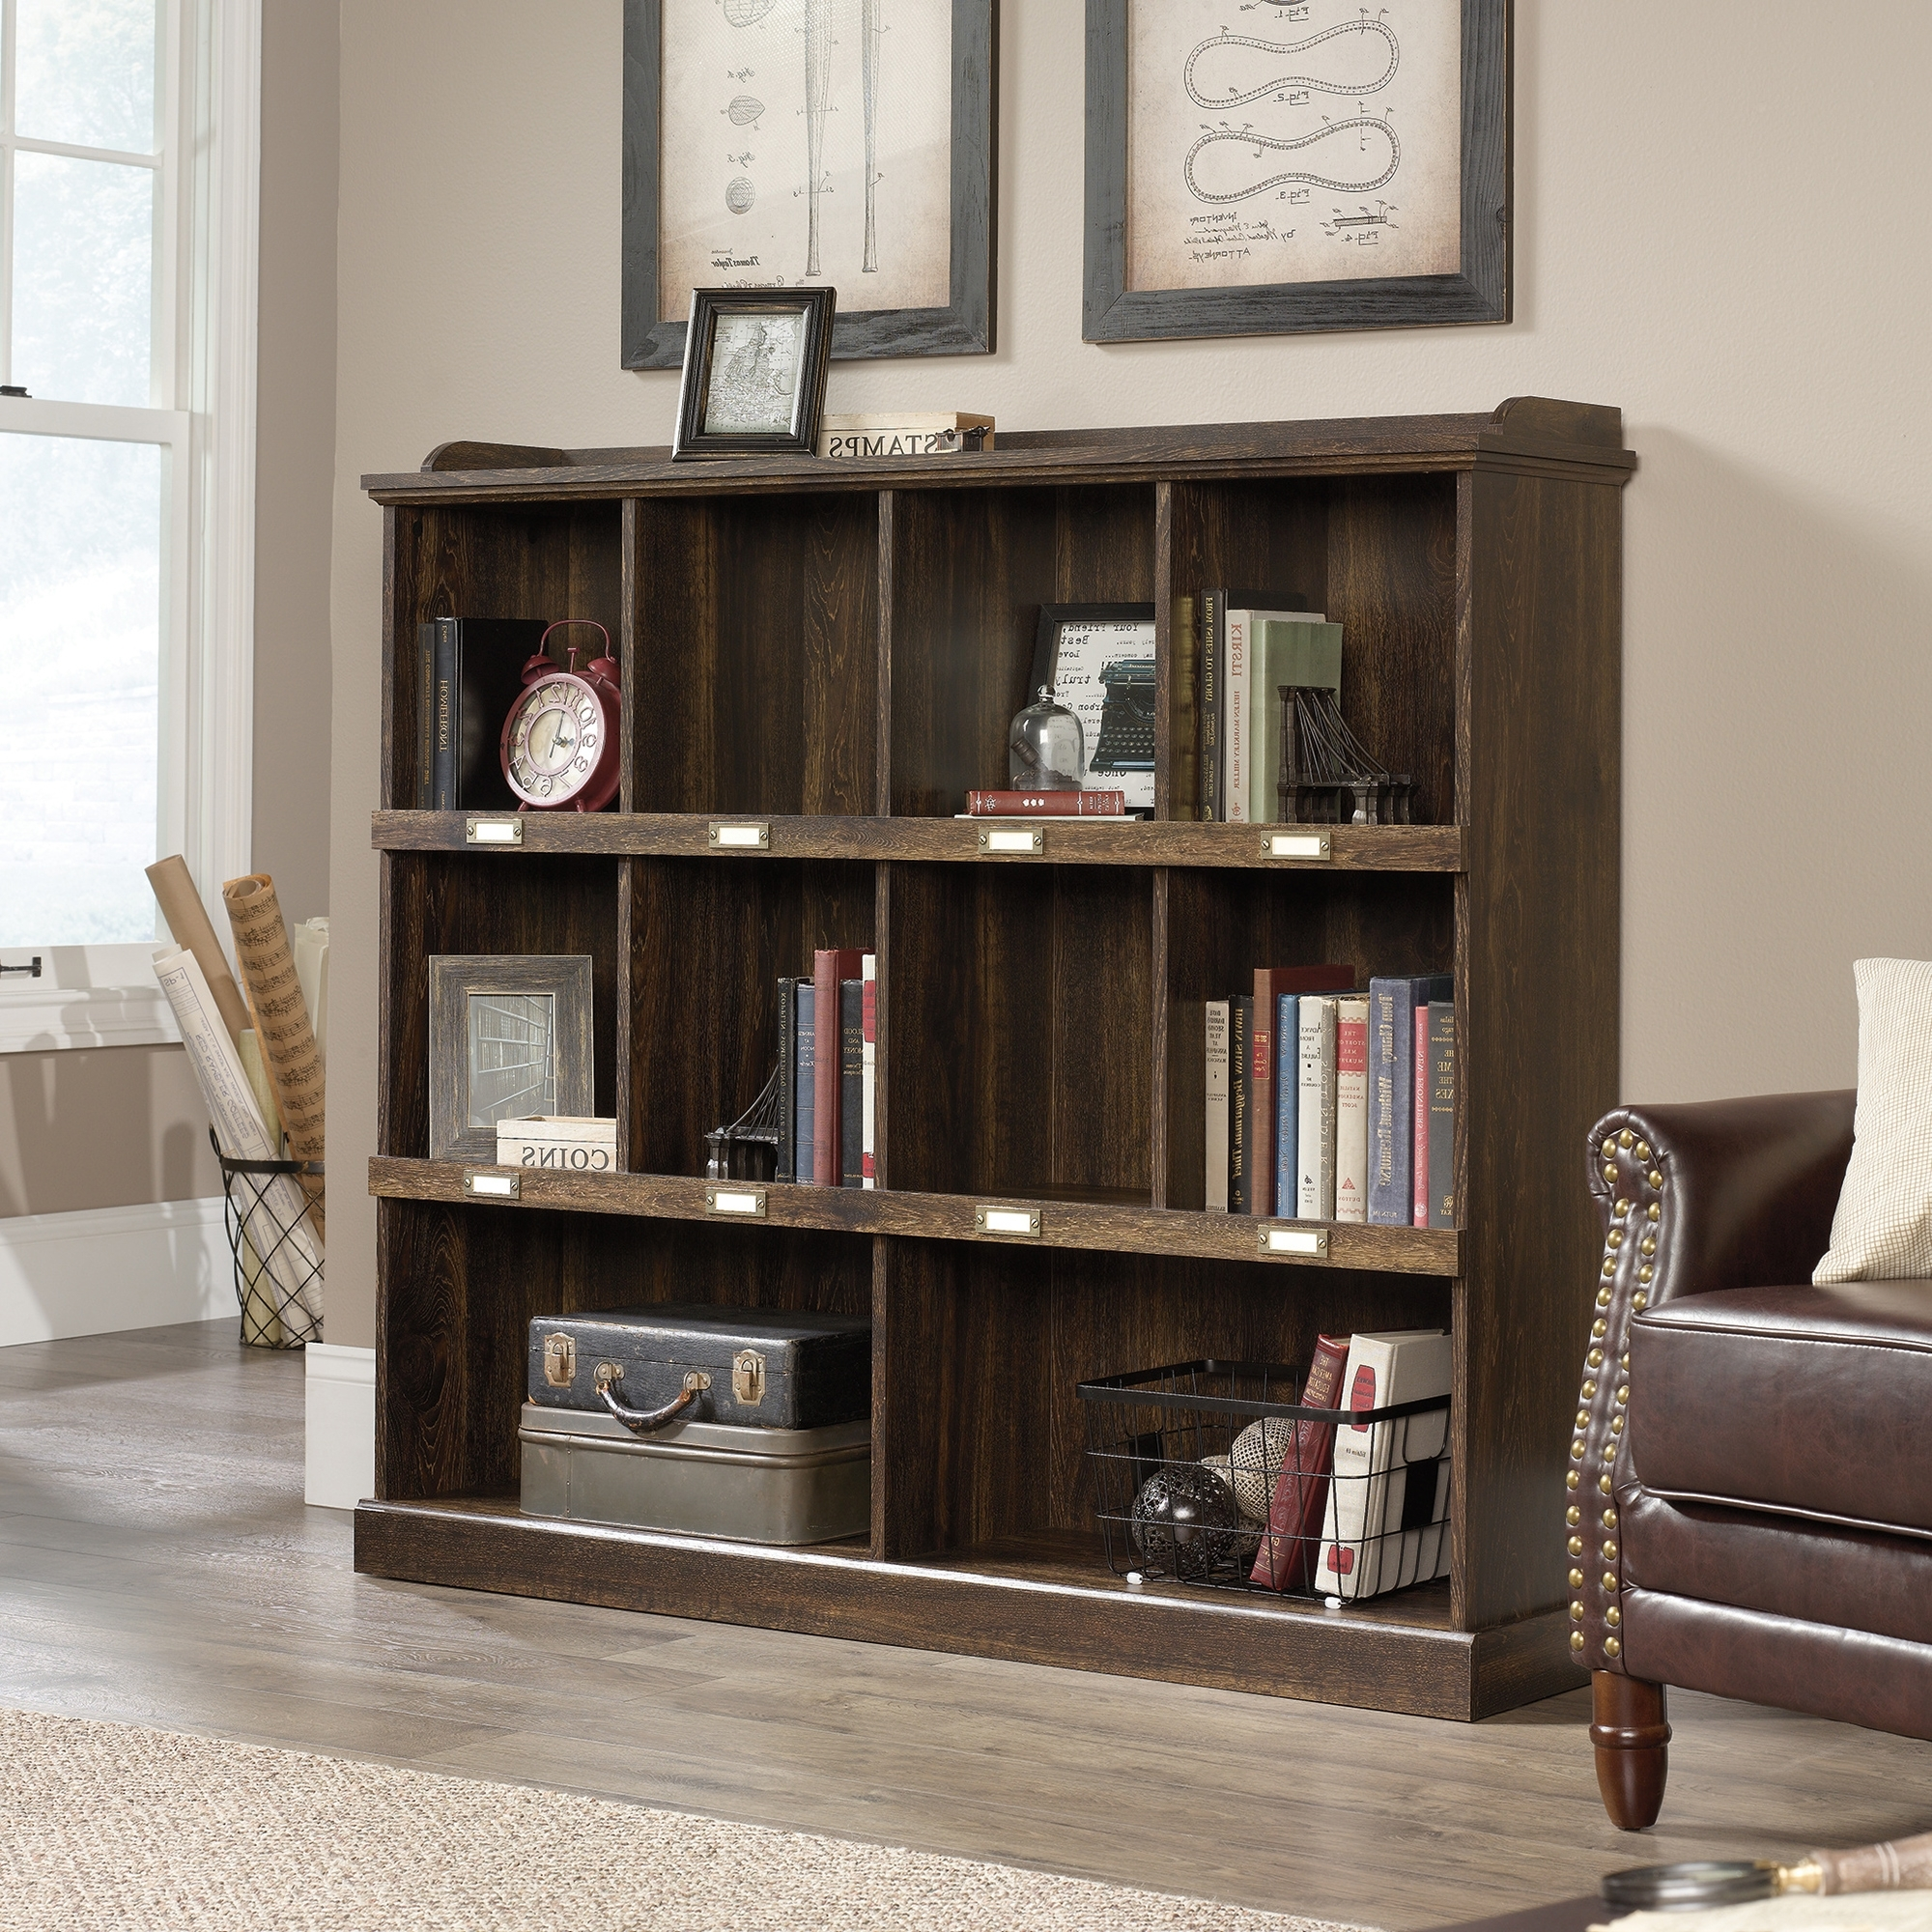 2018 Barrister Lane Bookcases With Barrister Lane Bookcase (422717) – Sauder (View 1 of 15)